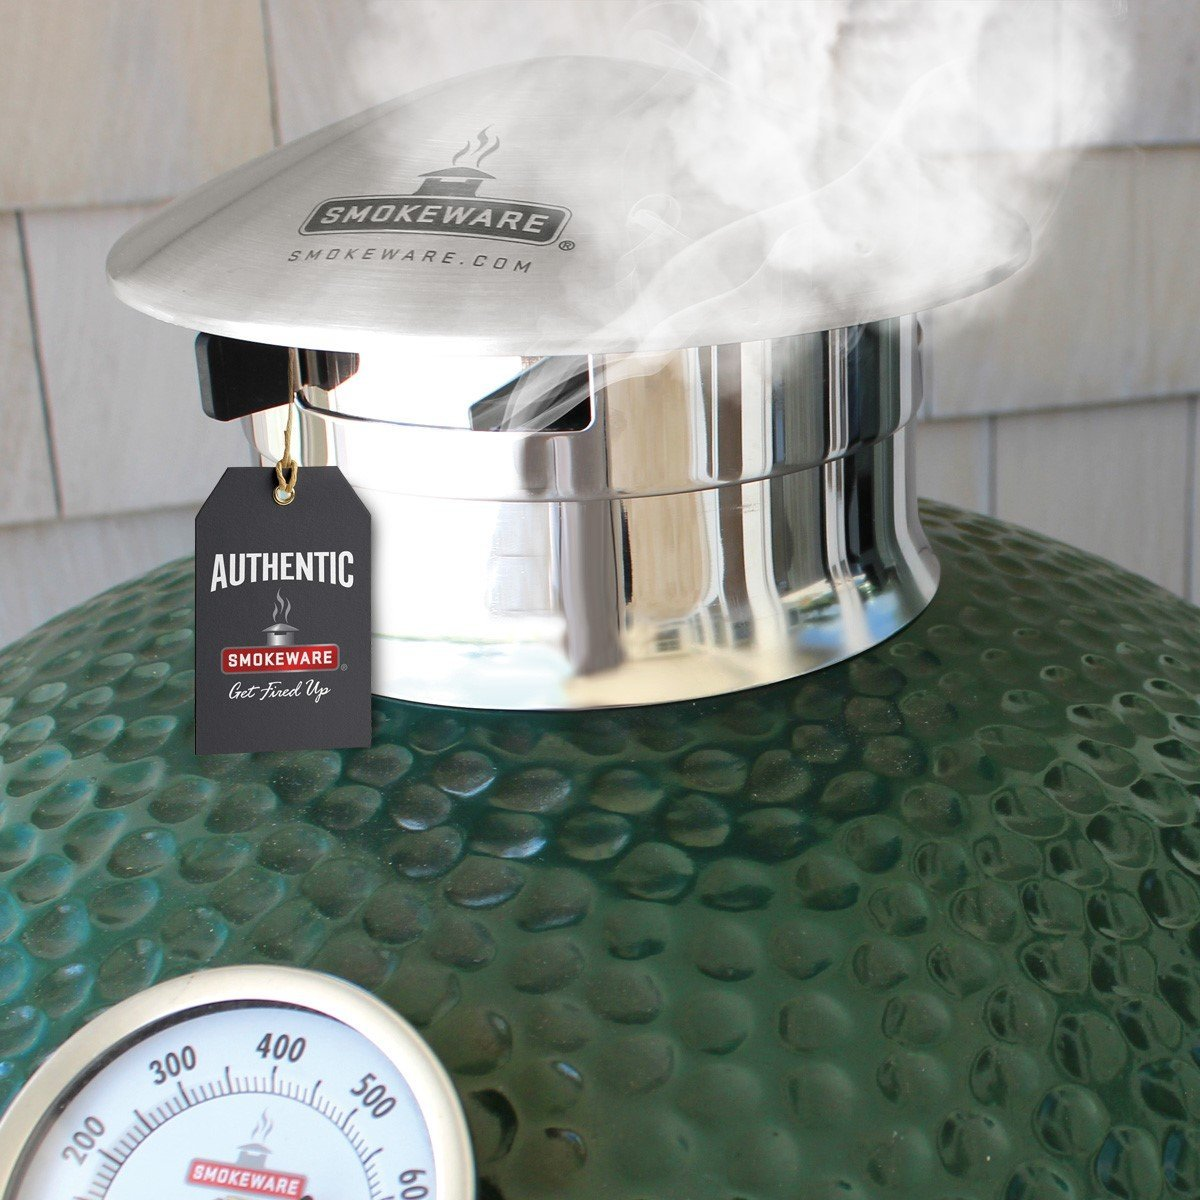 Smokeware Stainless Steel Vented Chimney Cap Review